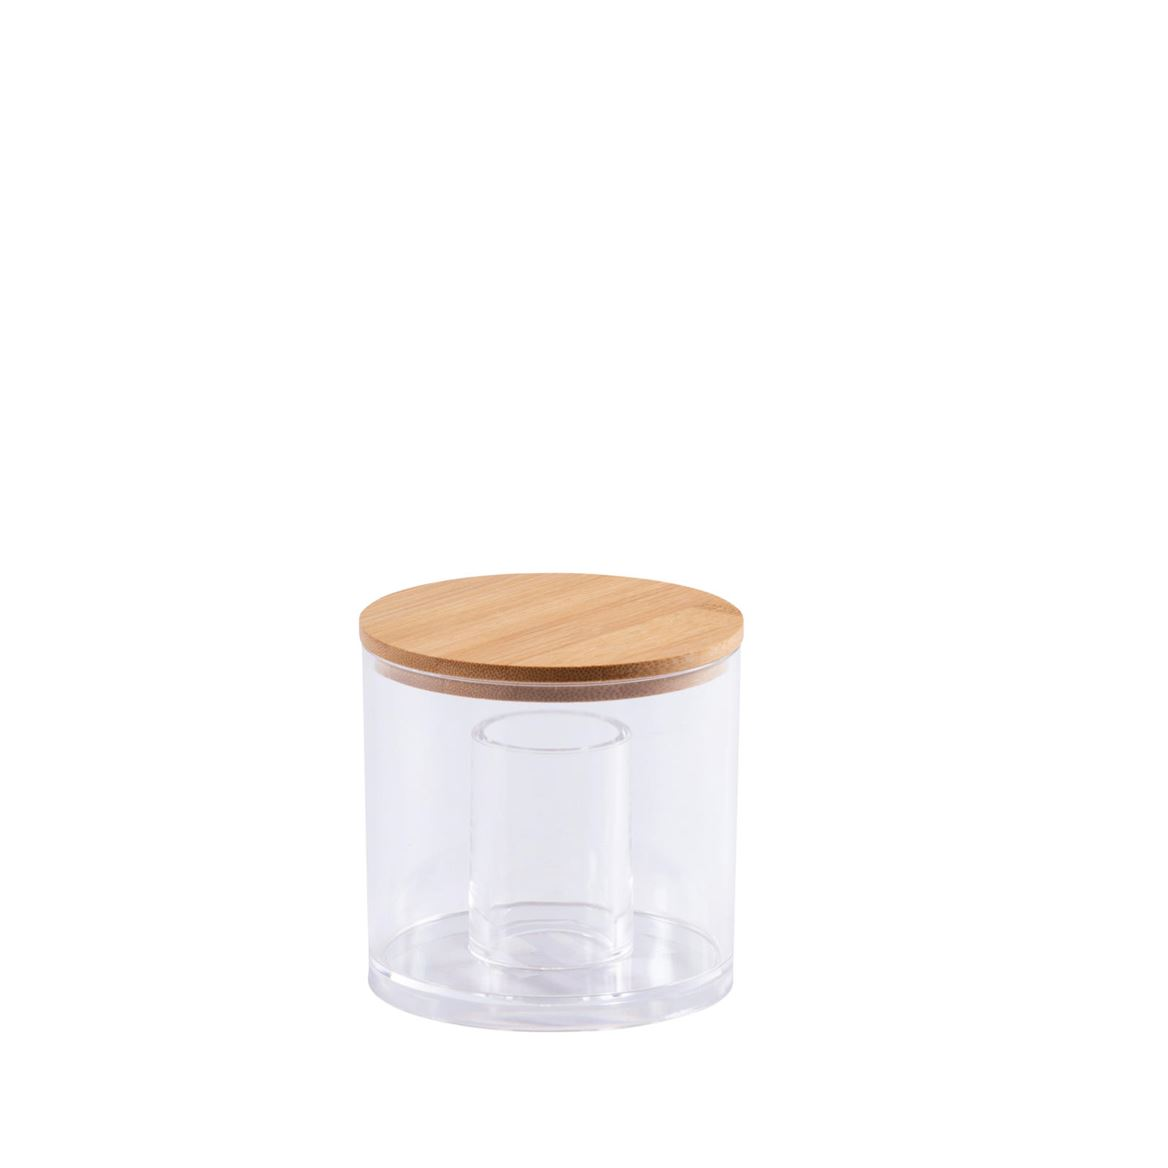 ORGANOO Porte-cotons-tiges transparent, naturel H 10 cm; Ø 9,8 cm_organoo-porte-cotons-tiges-transparent,-naturel-h-10-cm;-ø-9,8-cm